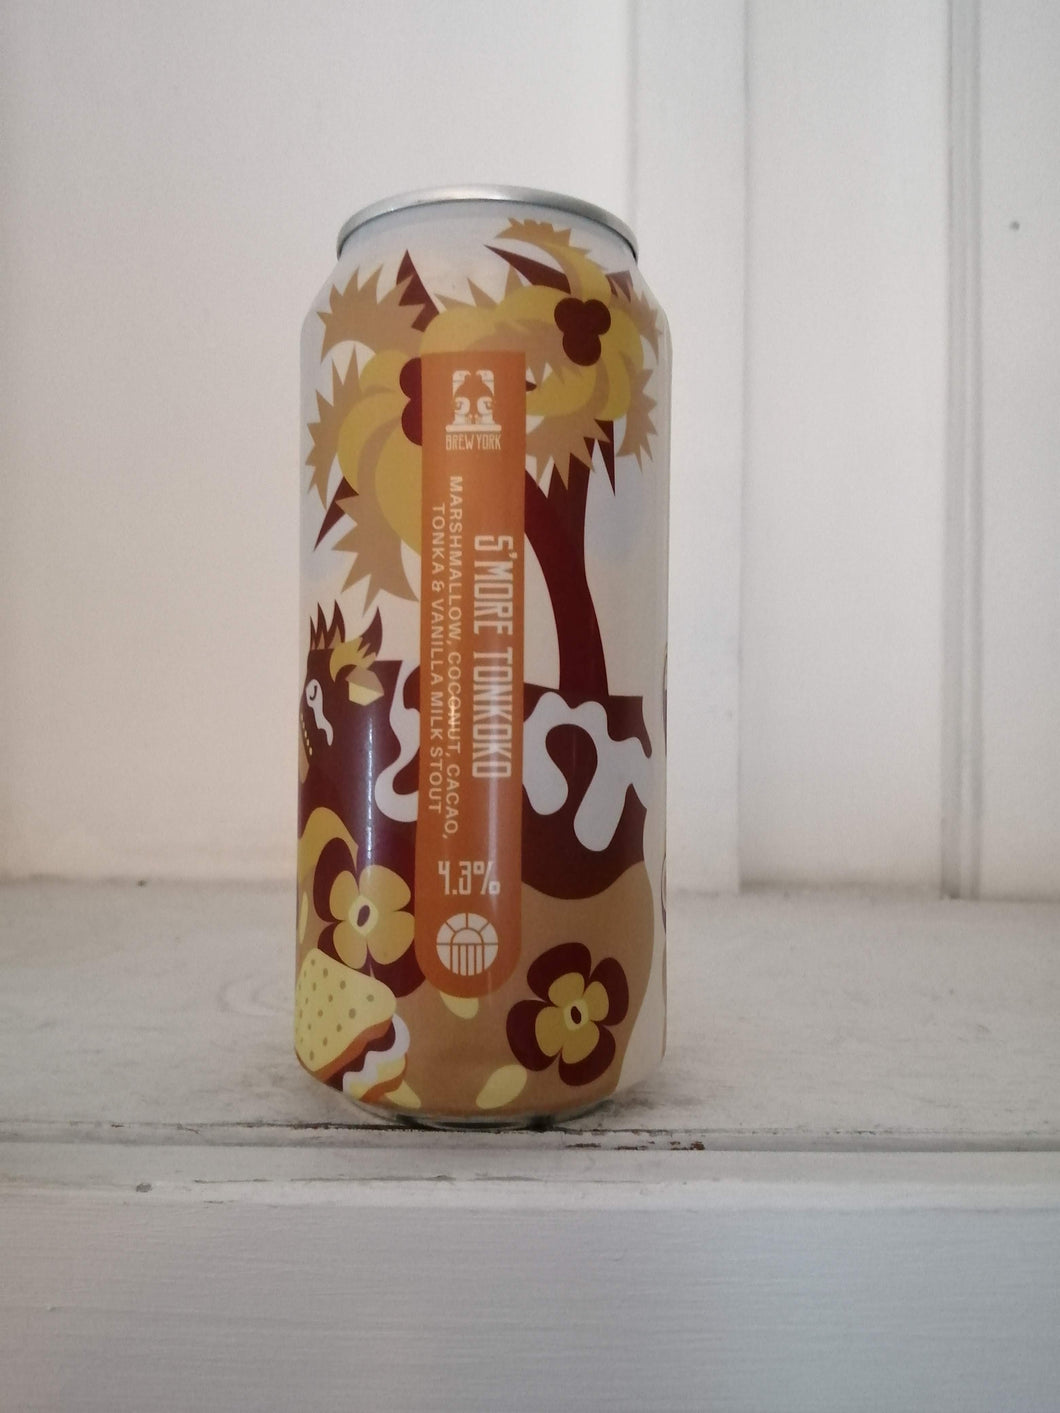 Brew York S'More Tonkoko 4.3% (440ml can)